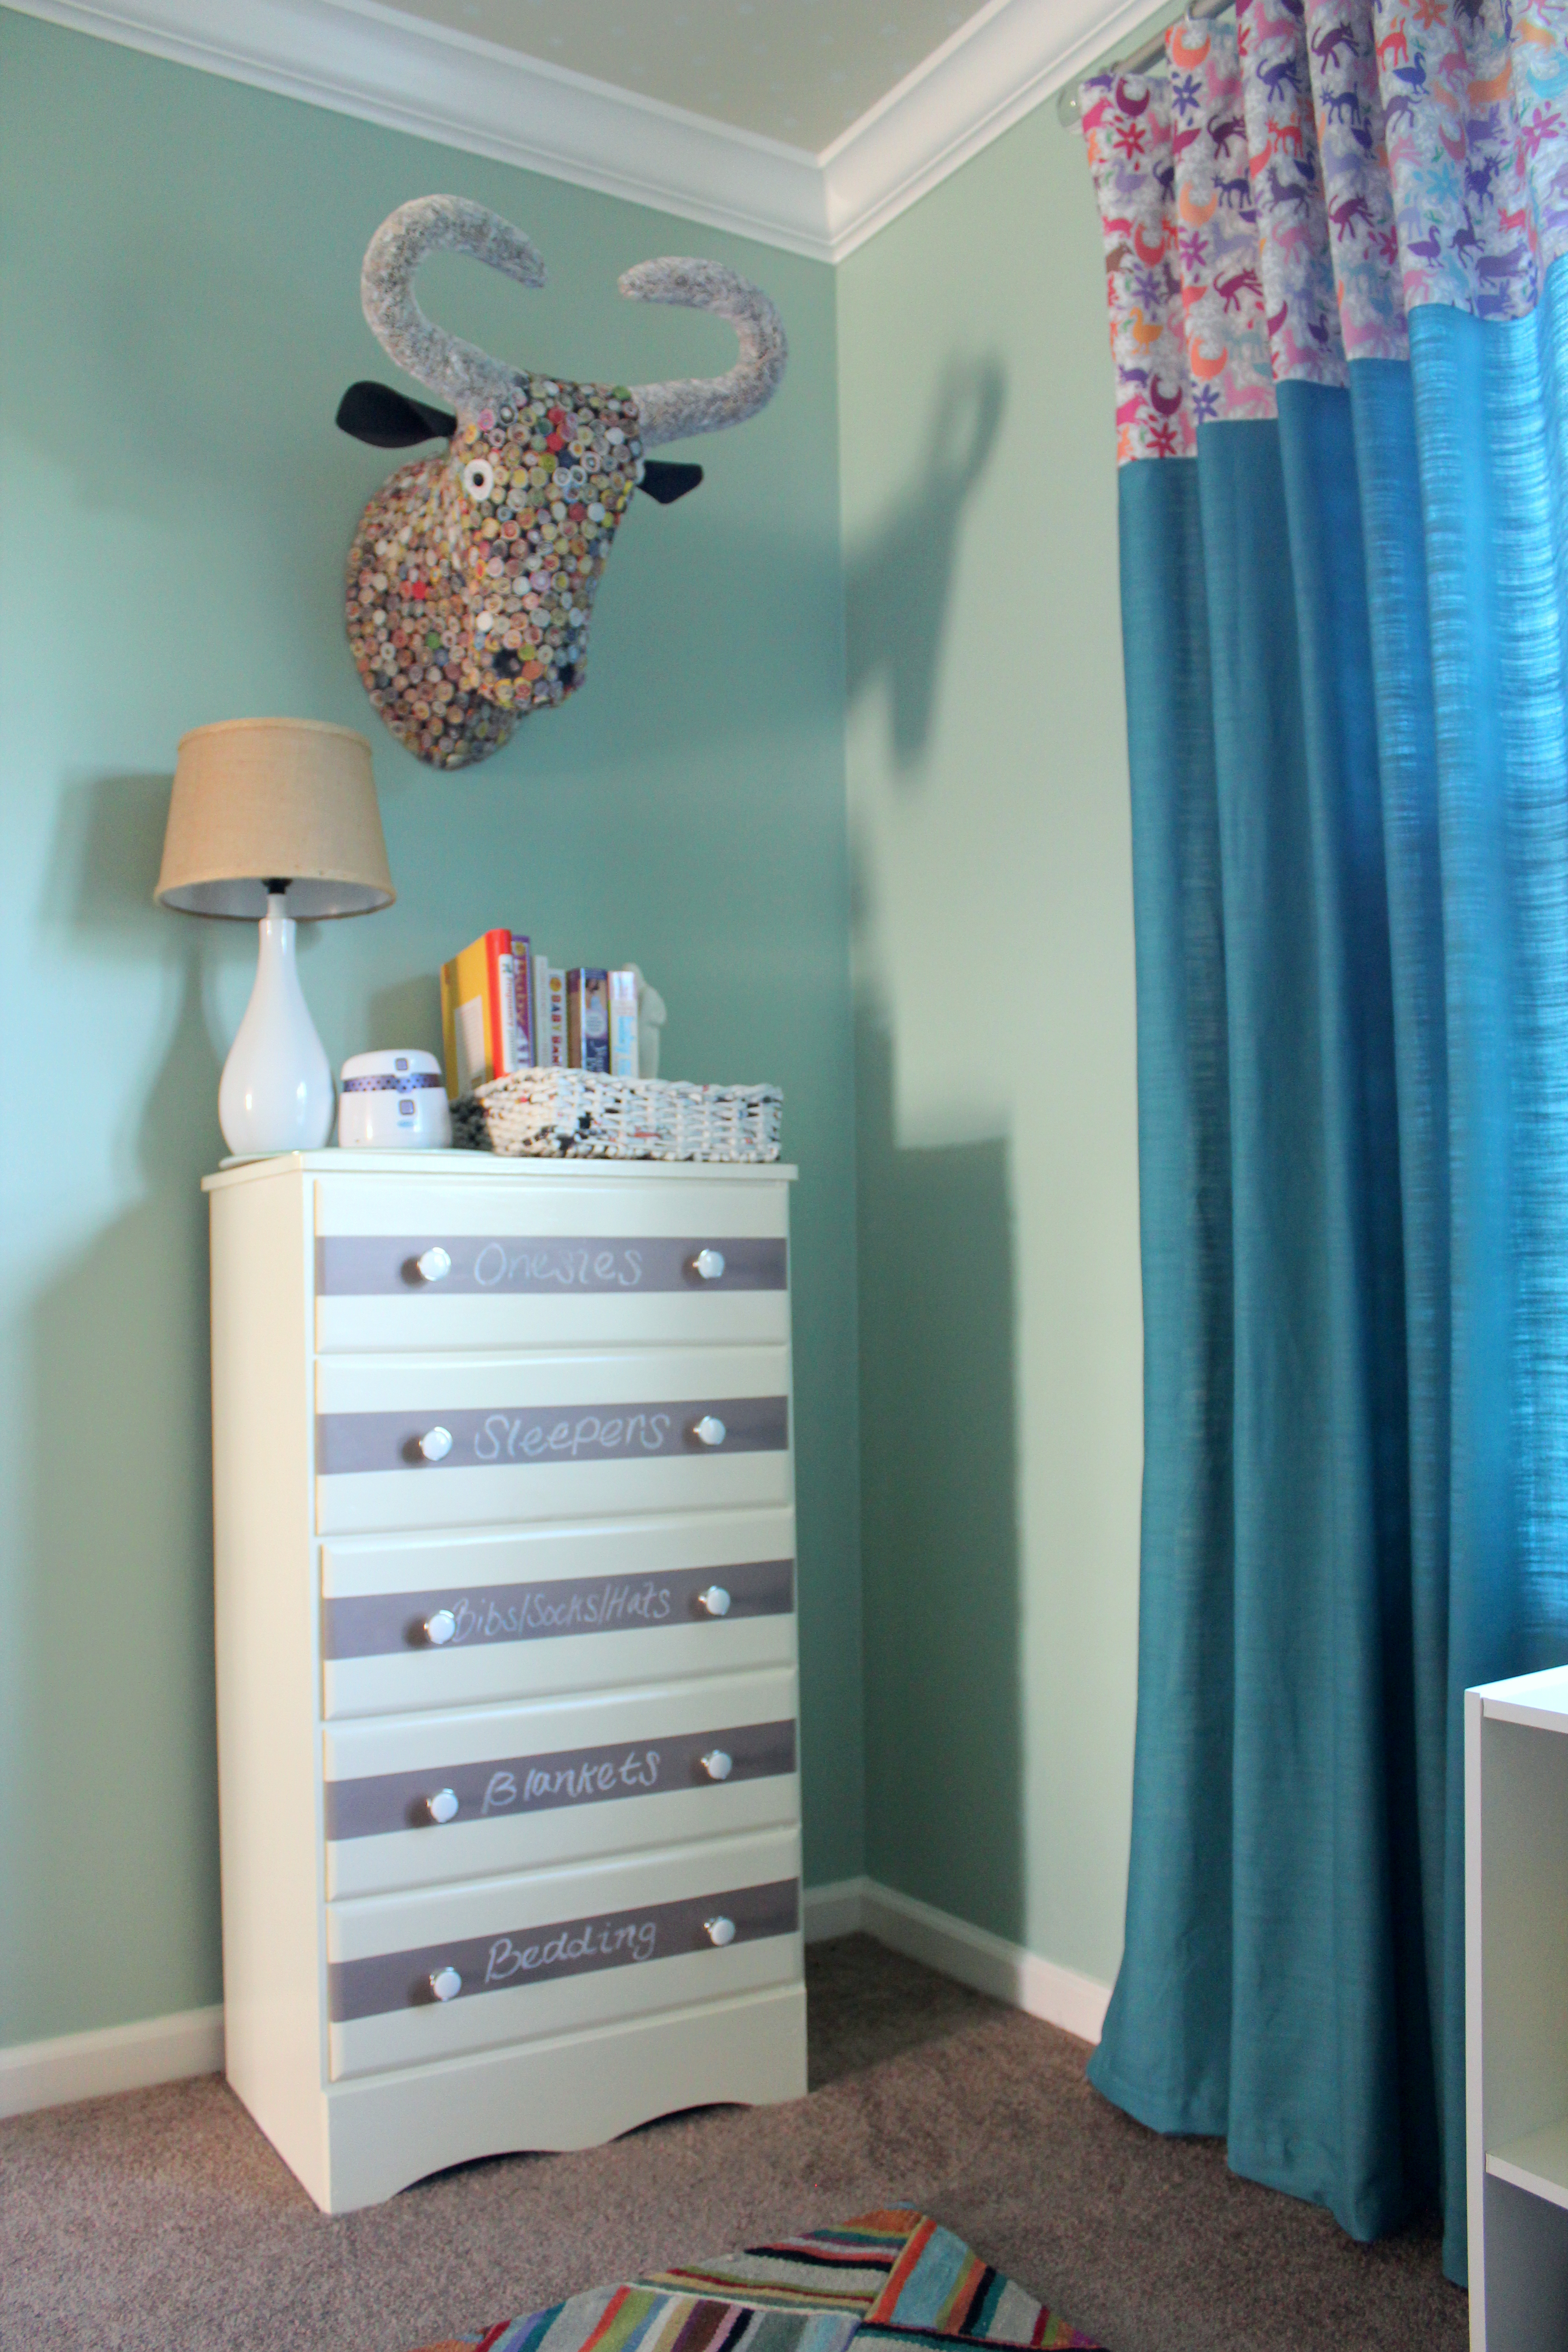 DIY Chalkboard Purple and White Striped Dresser